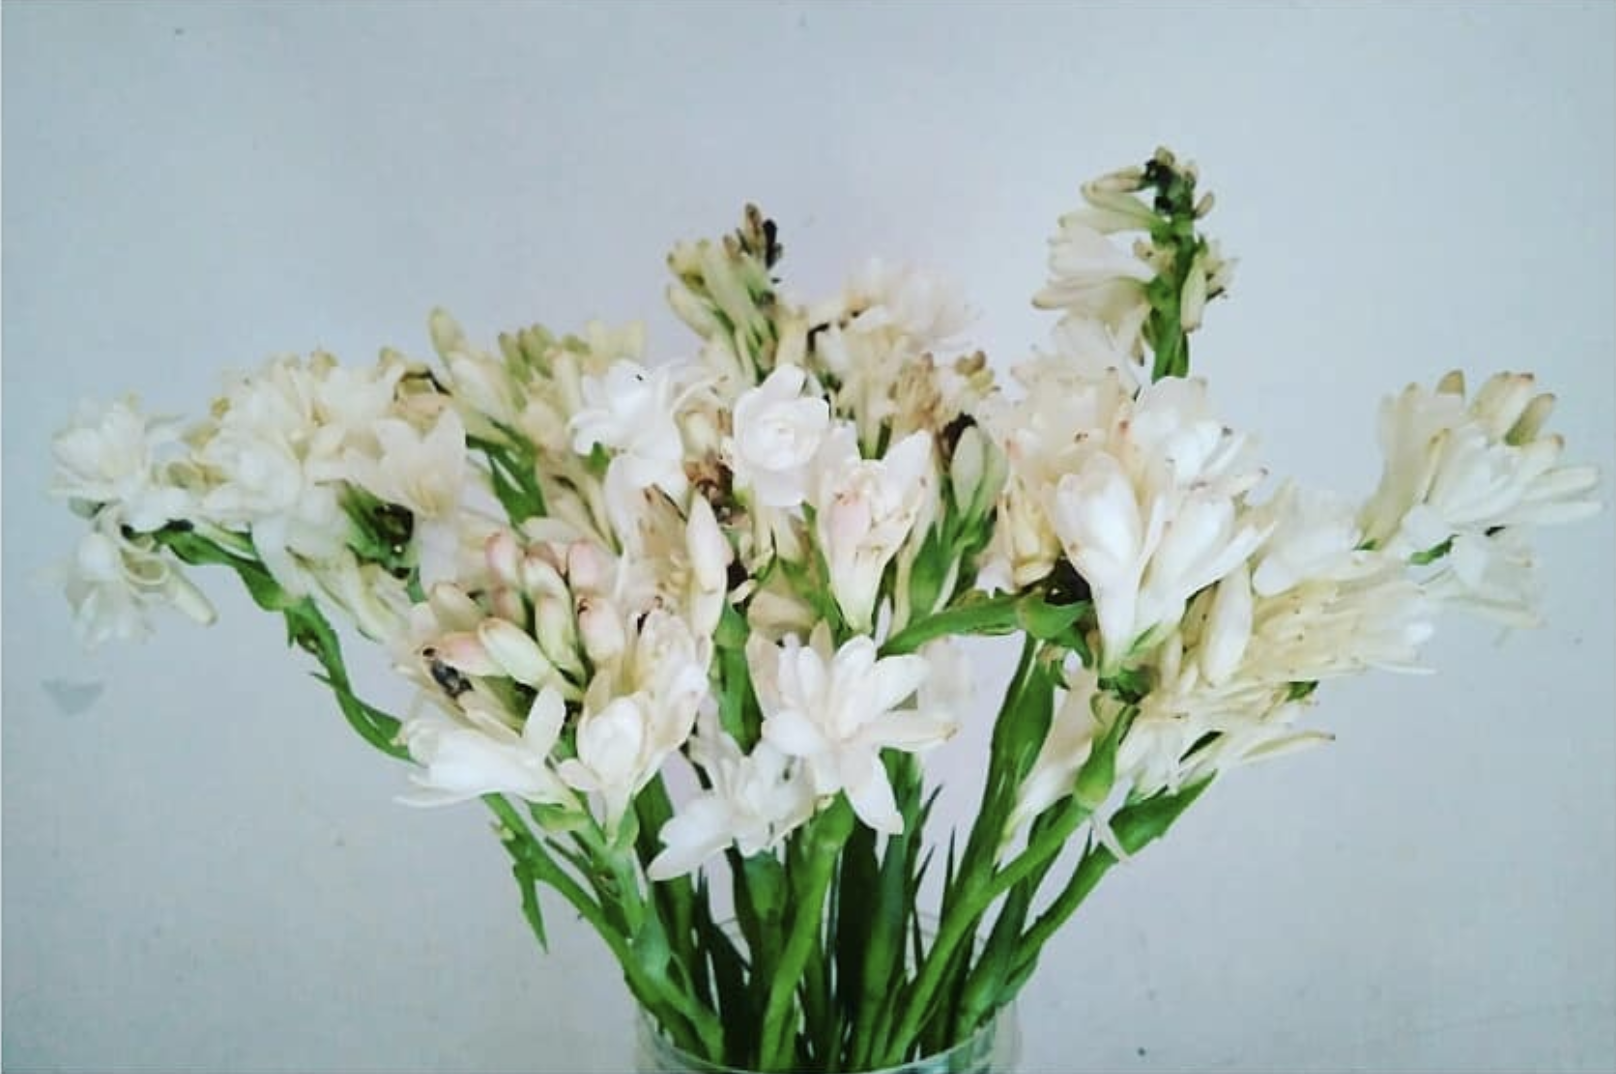 tuberose, bridal, bouquet, season, guide, wedding, planning, bride, floral, flowers, seasonal